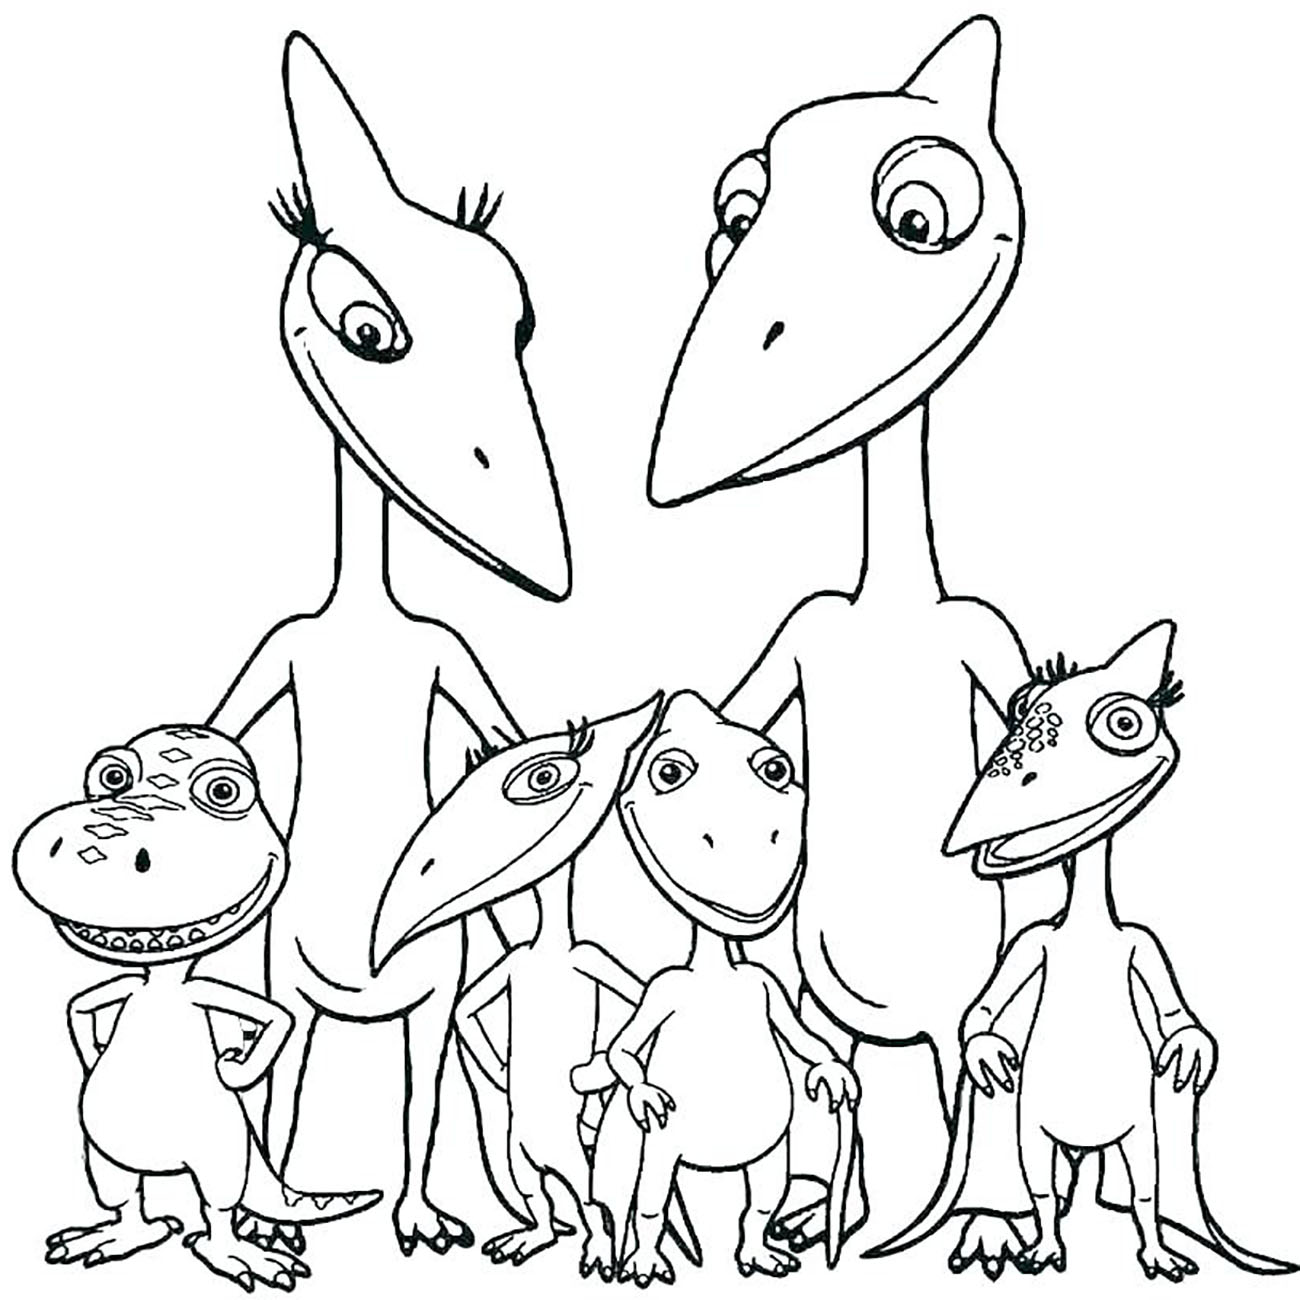 Dinosaurs free to color for kids - Dinosaurs Kids Coloring Pages